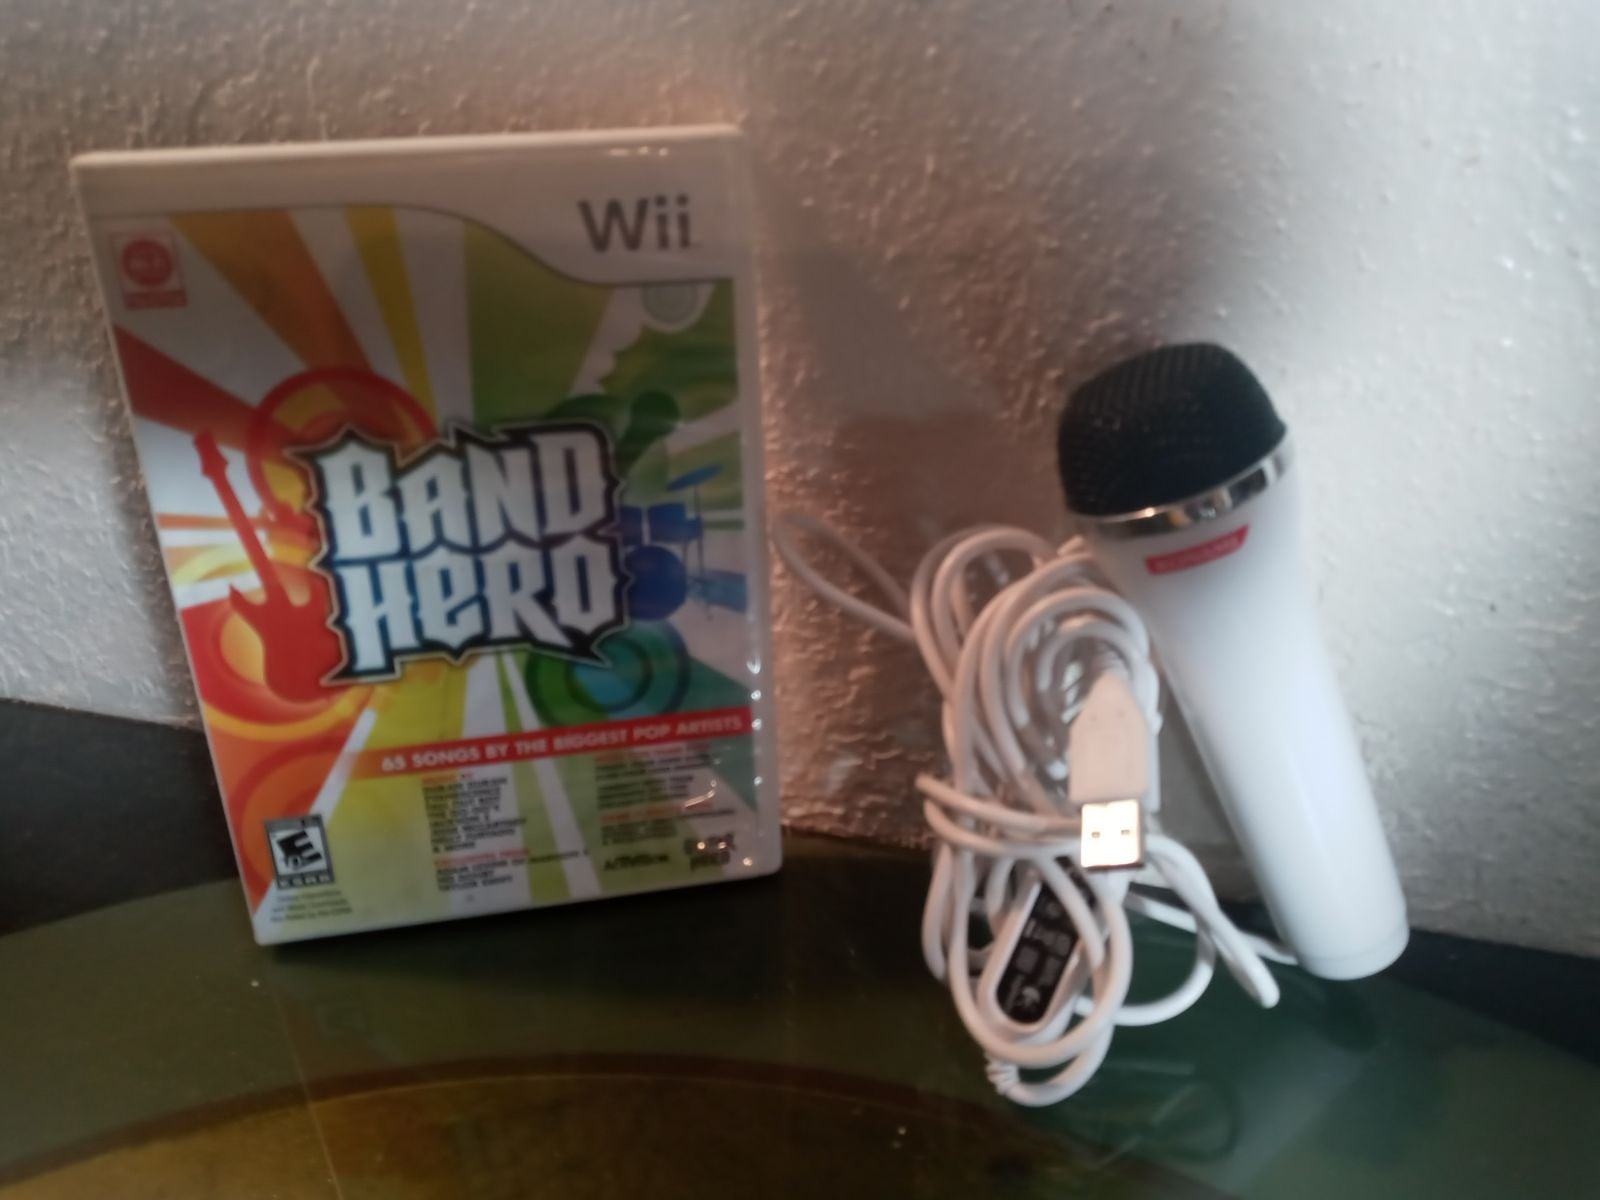 Wii Band Hero with microphone